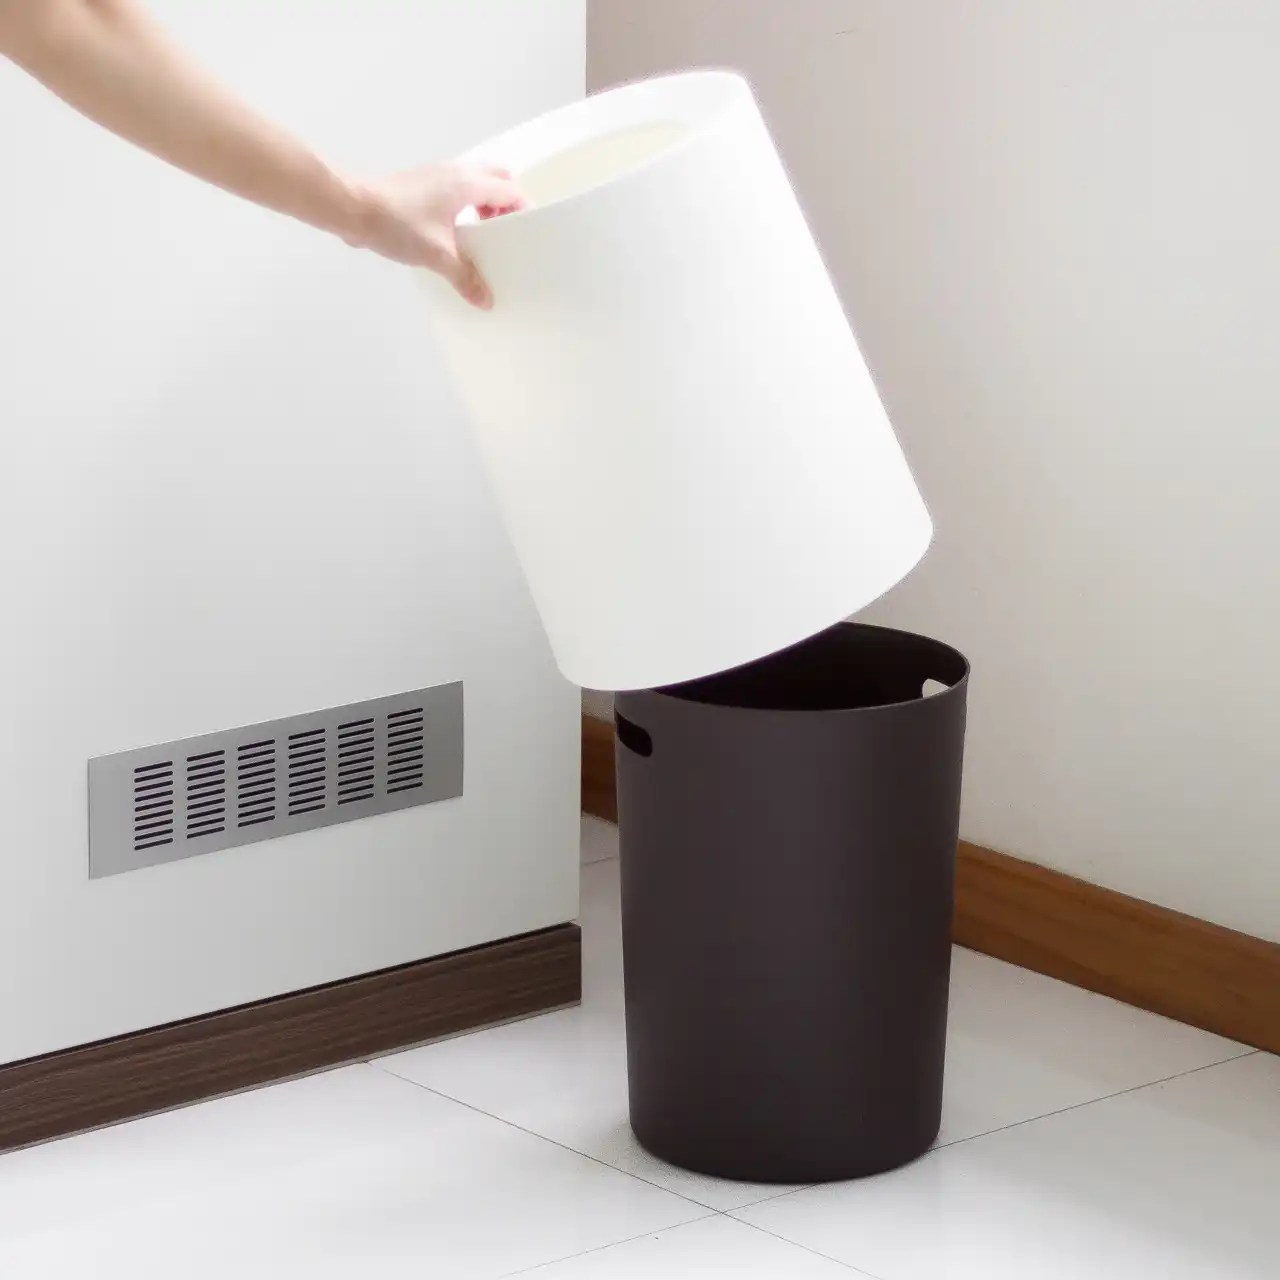 Waste Paper Basket Hej Minimalist Waste Paper Basket With Cover Kiyolo